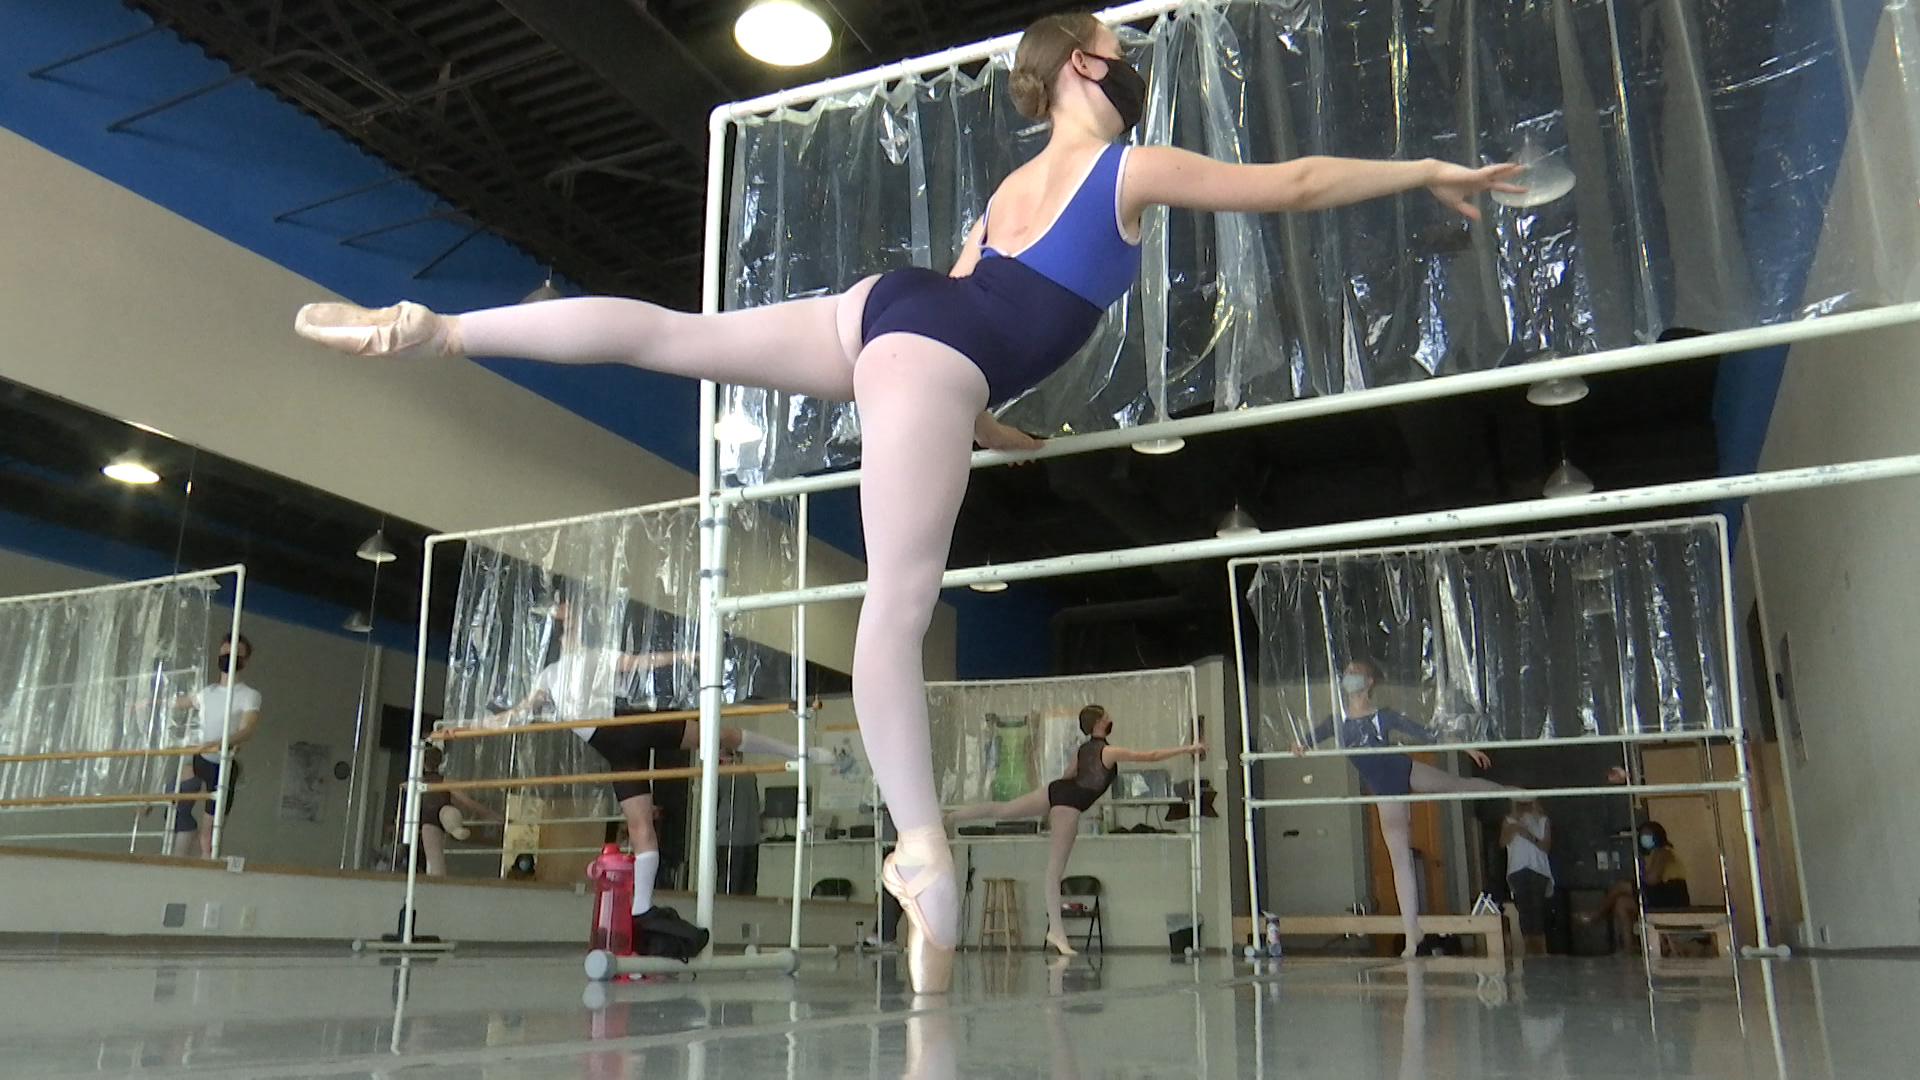 After the continued delays to have physical classes, dancers can now plie and more now that the Wichita Falls Youth Ballet's doors are re-opened.